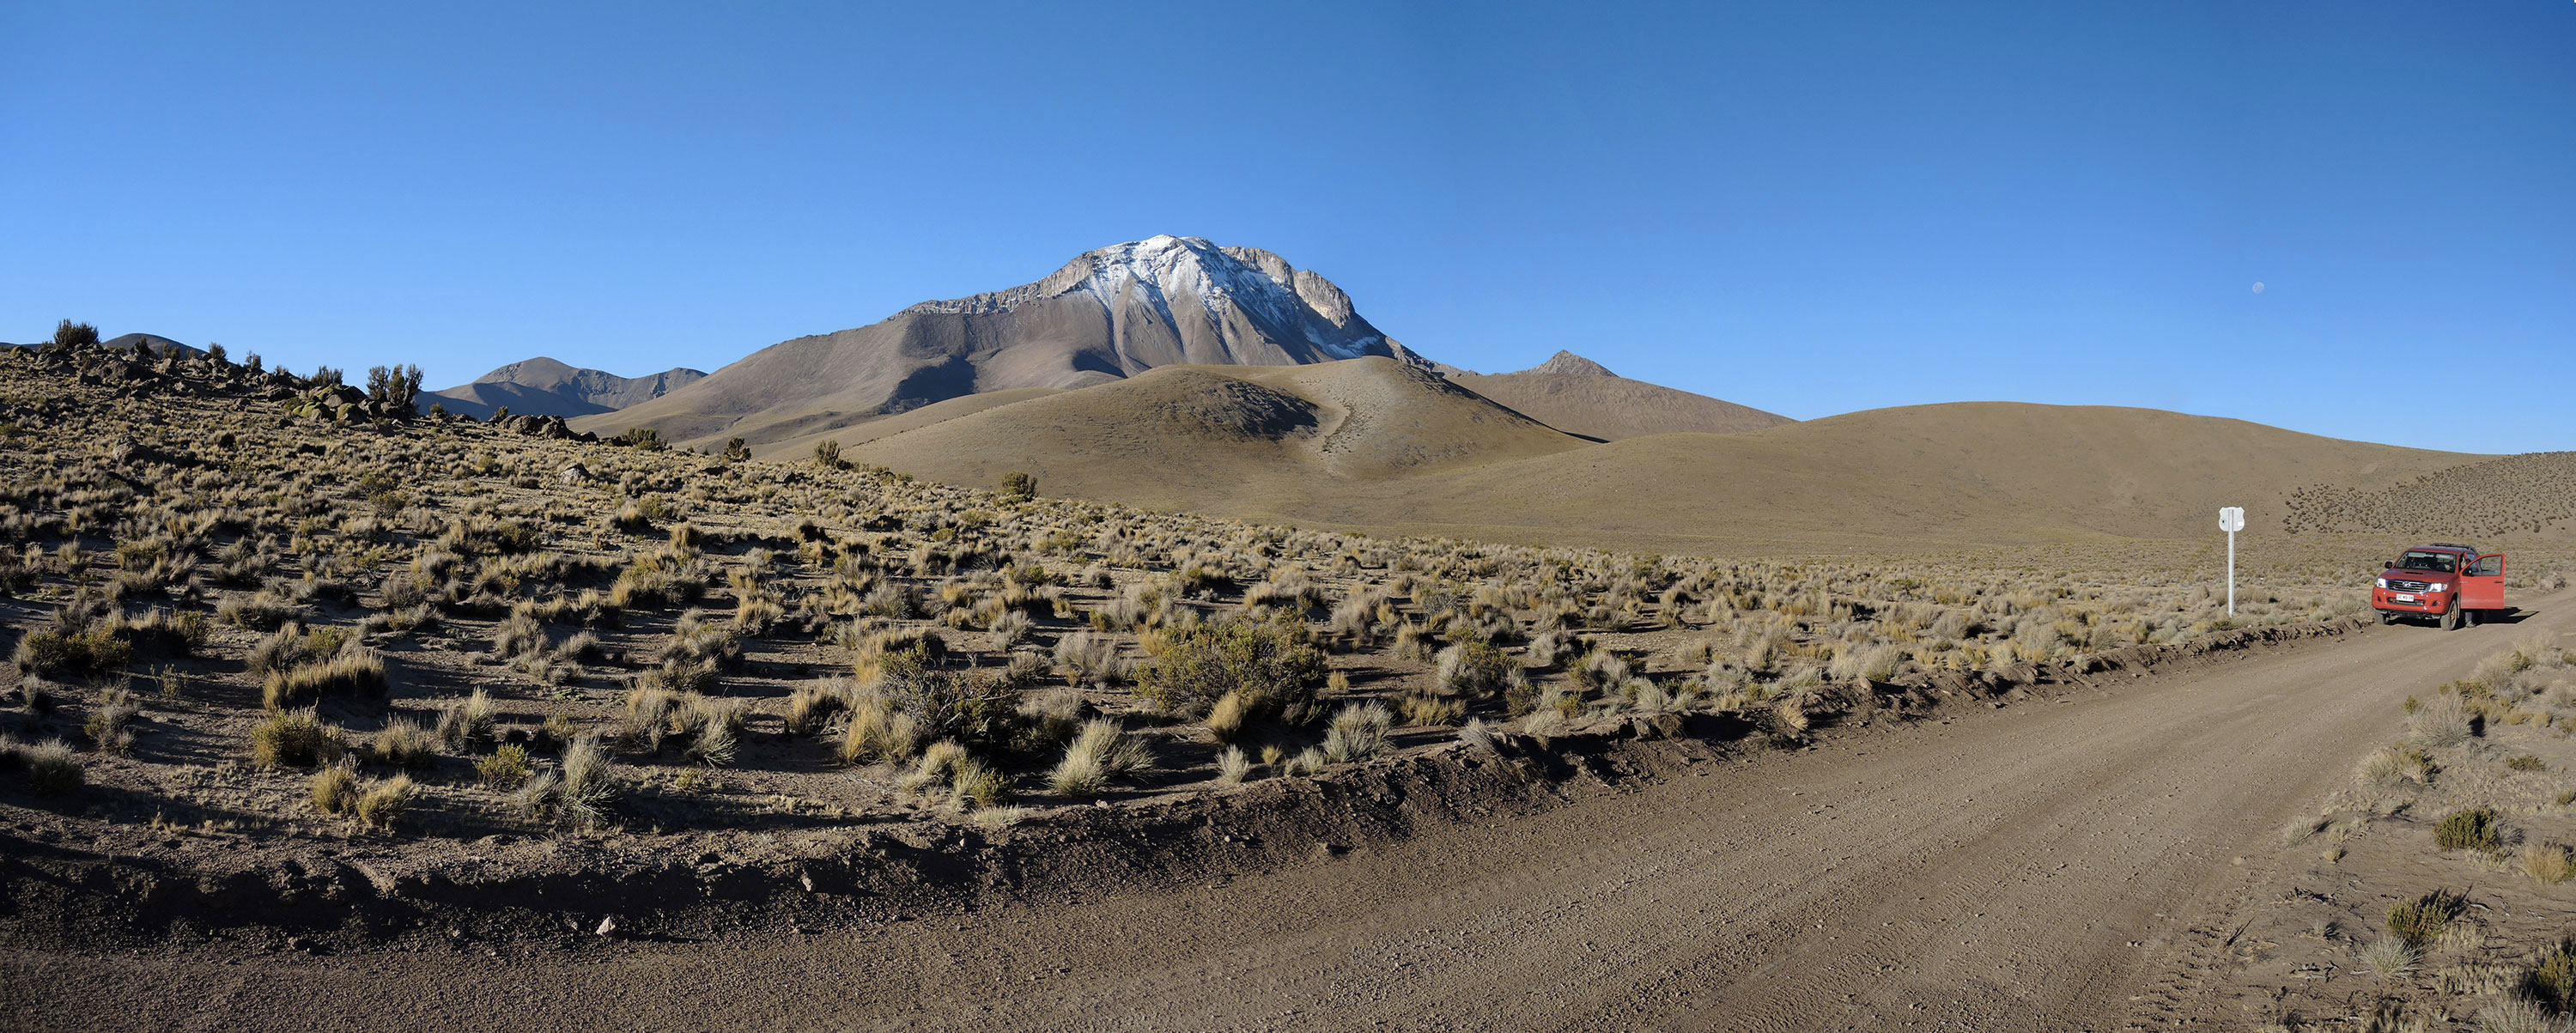 Cerro Lliscaya (5634m), Chile/Bolívie